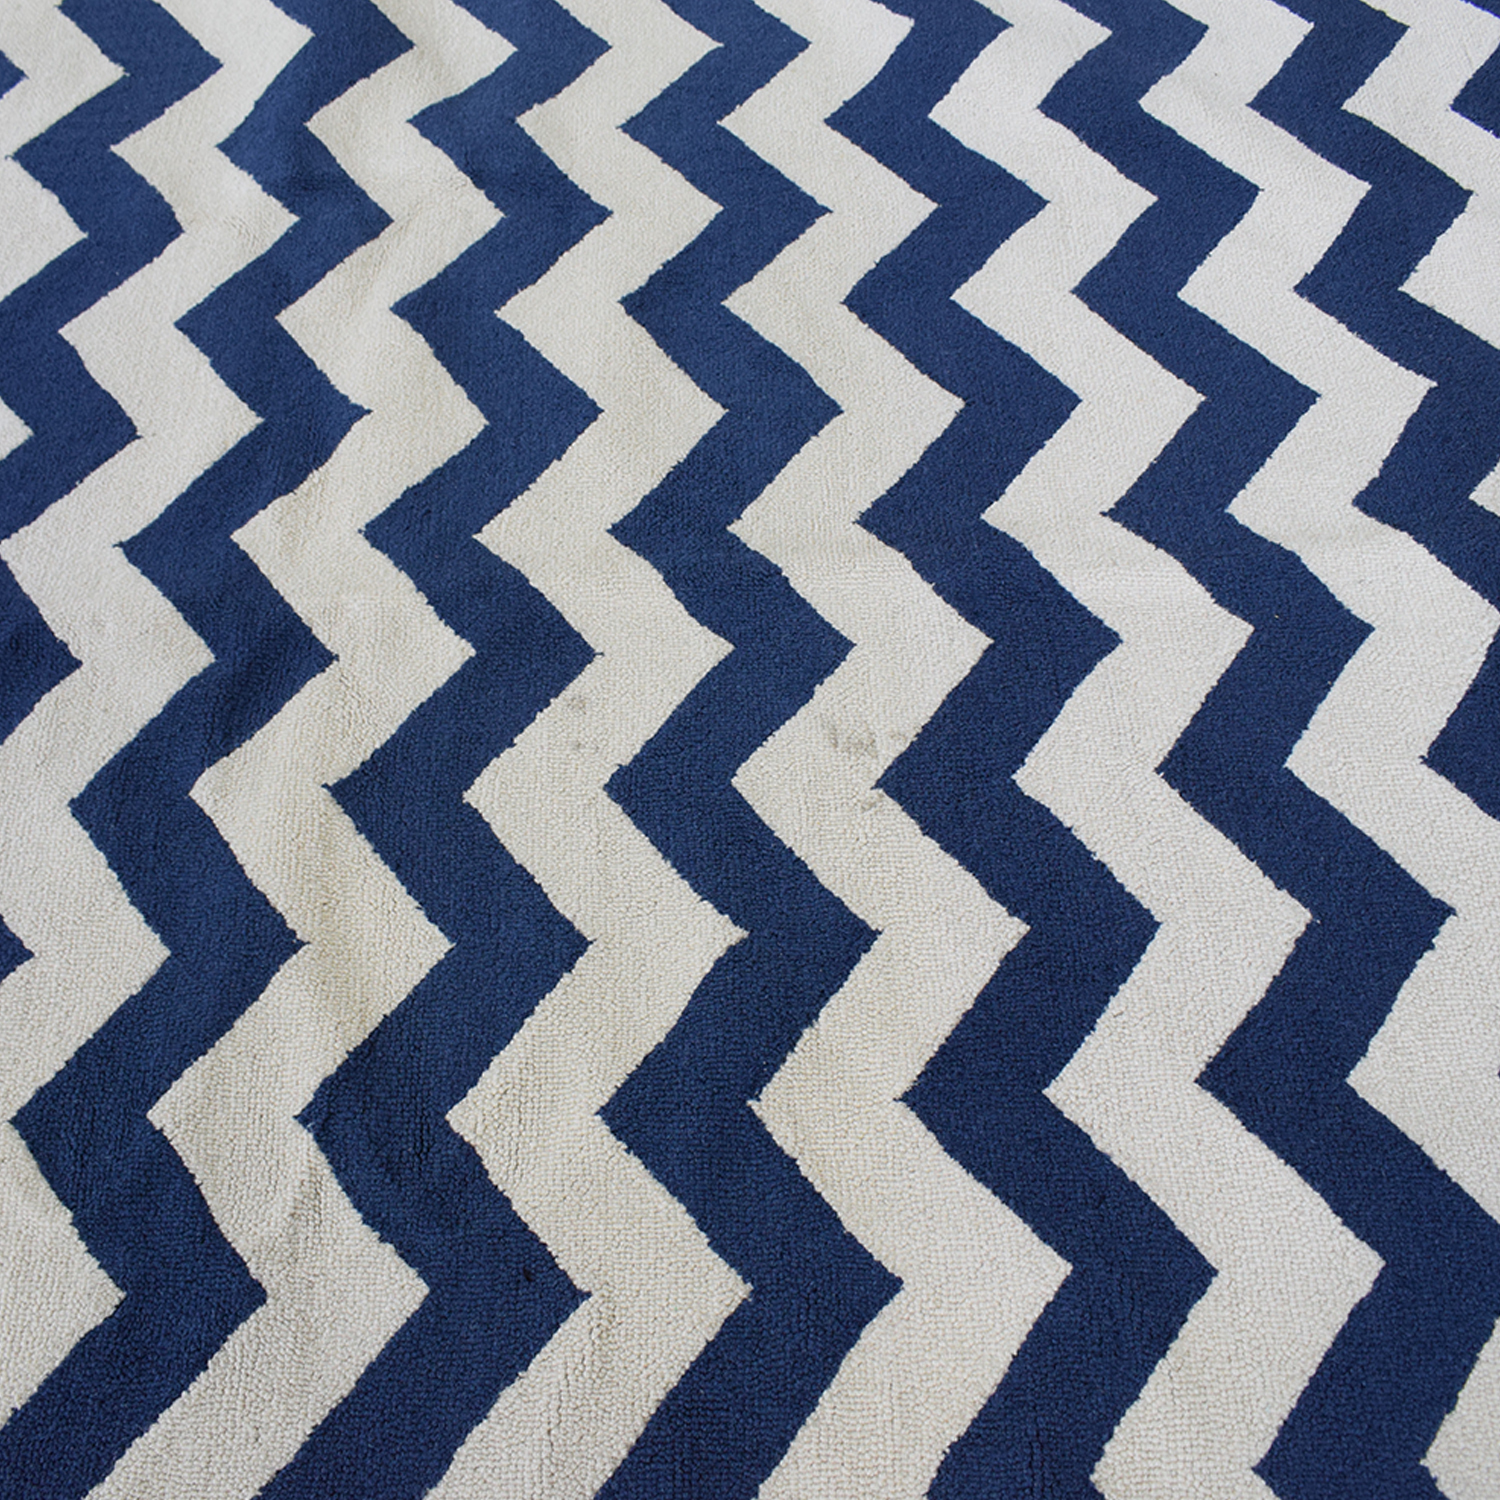 Pottery Barn Kids Pottery Barn Kids Wool Chevron Rug nj